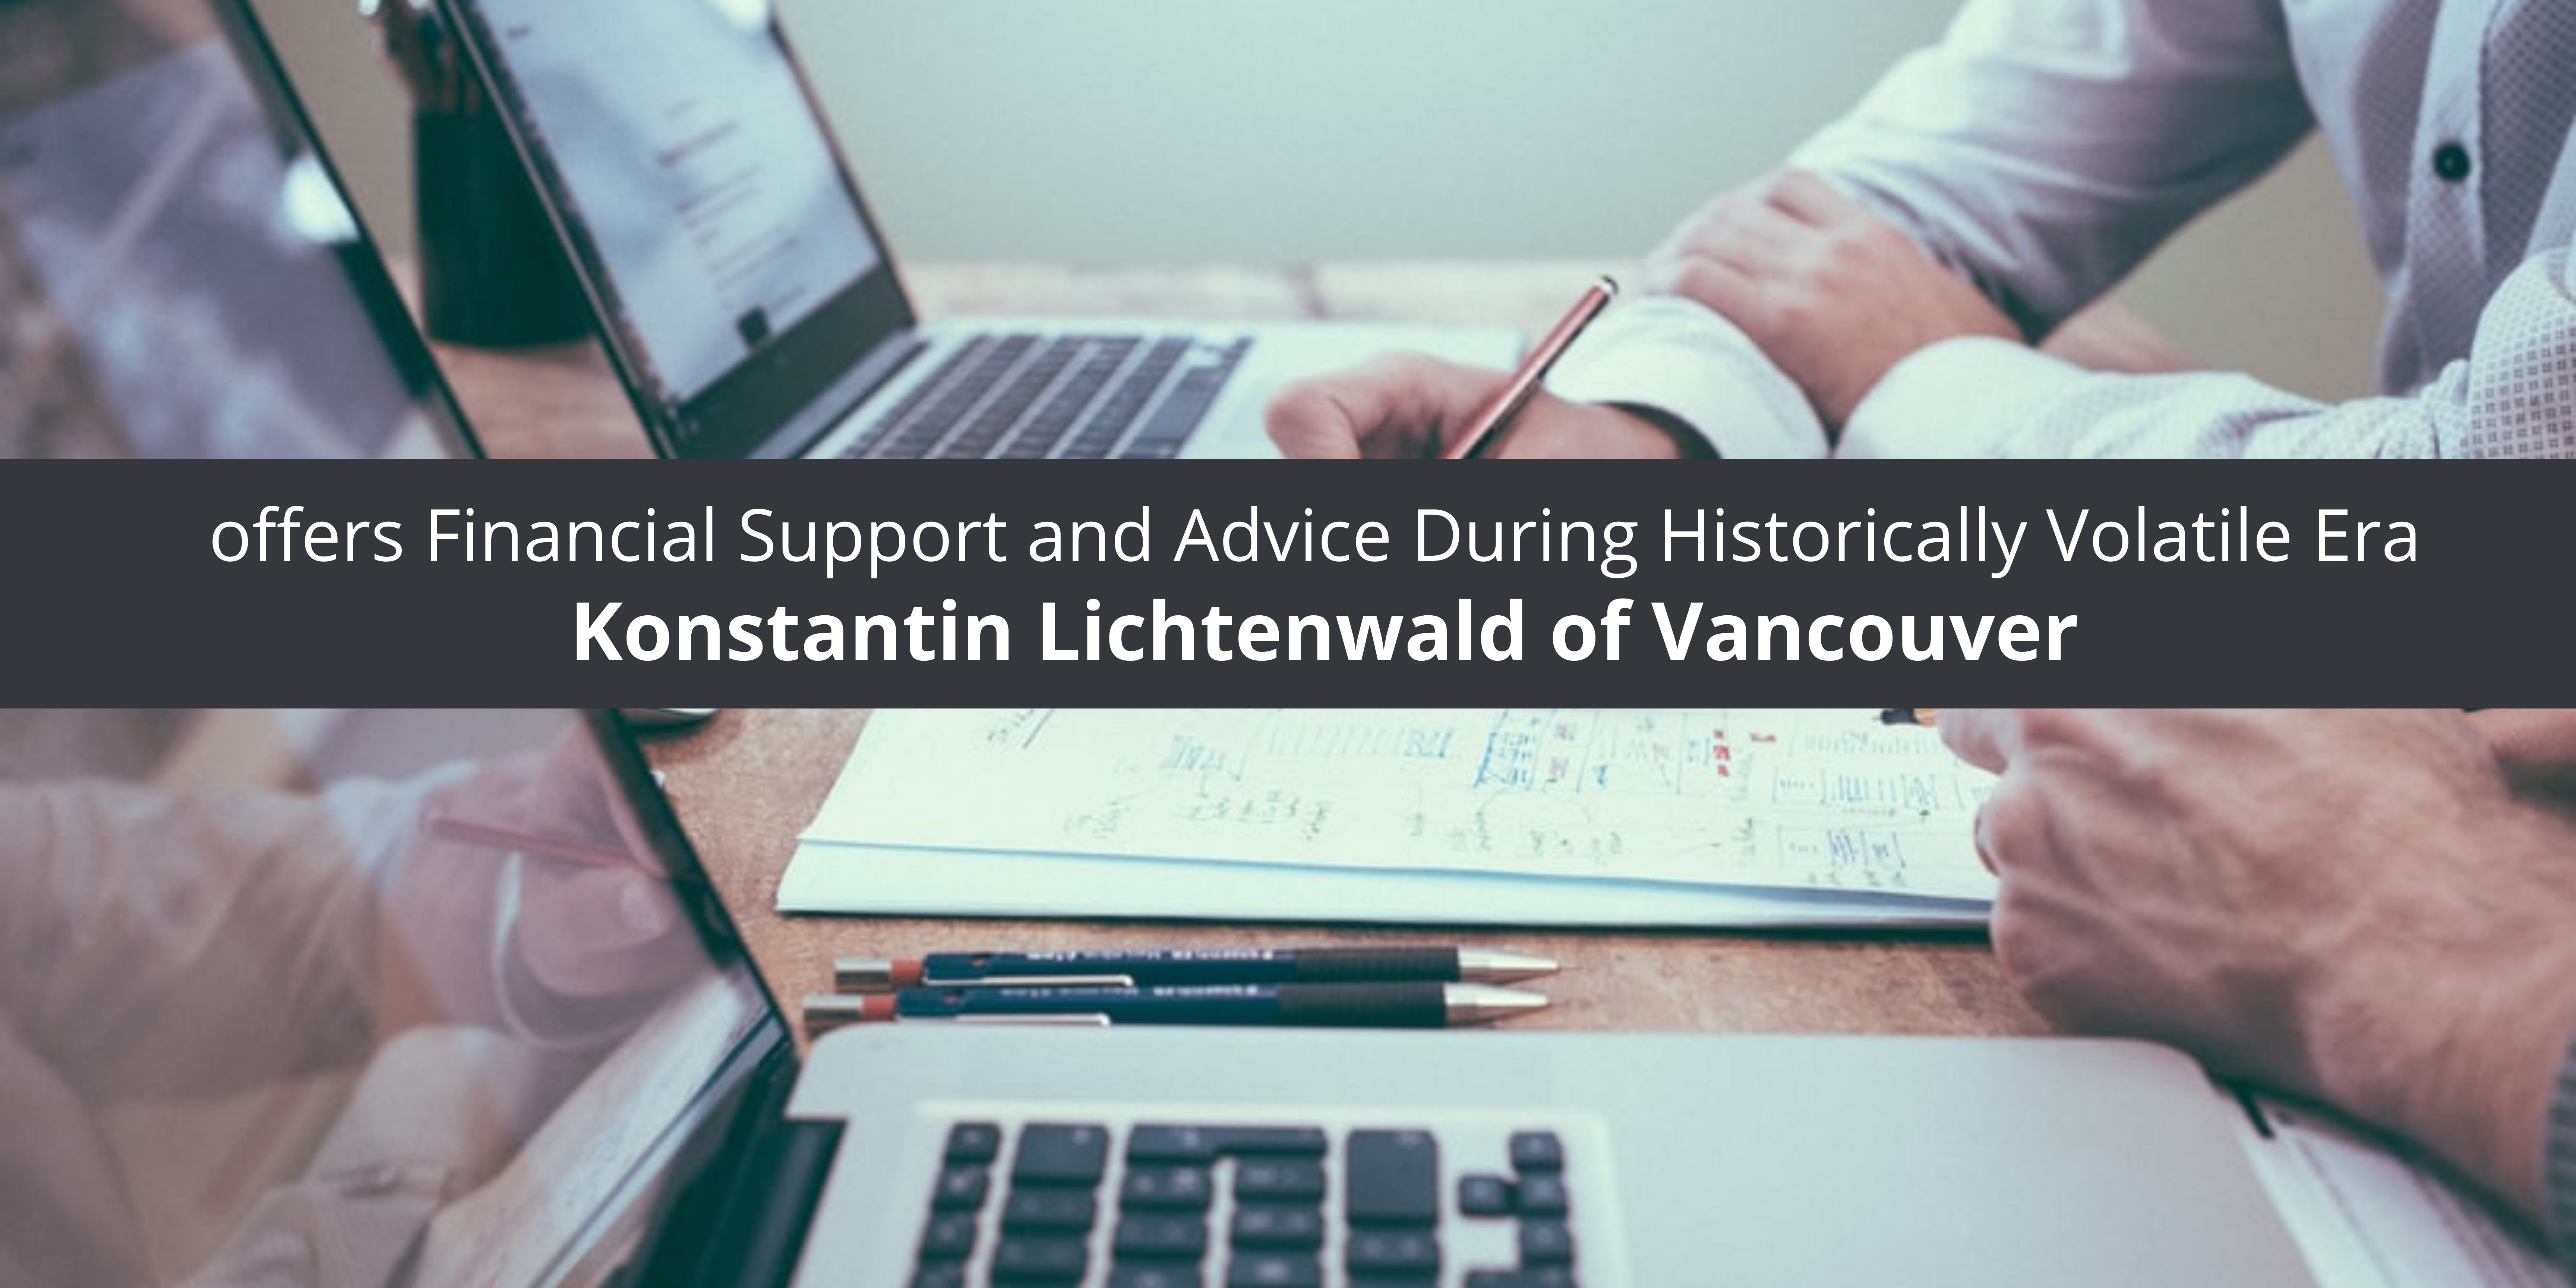 Konstantin Lichtenwald of Vancouver offers Financial Support and Advice During Historically Volatile Era